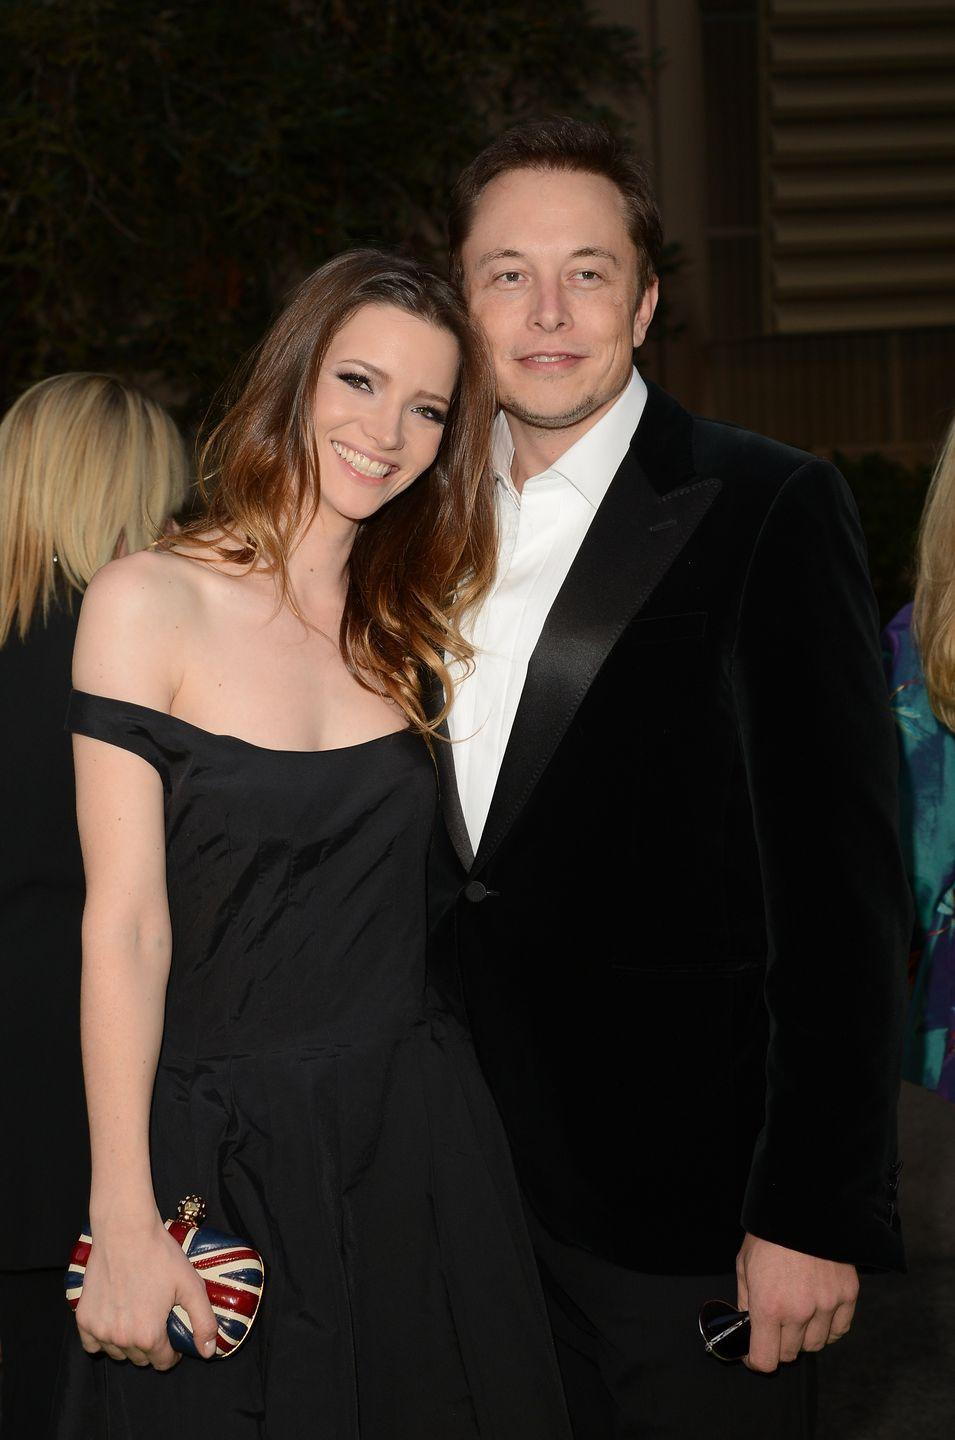 """<p>Elon Musk and actress Talulah Riley got married in 2010, but split after two years, which the <a href=""""https://www.forbes.com/sites/hannahelliott/2012/01/18/elon-musk-to-divorce-wife-talulah-riley/?sh=375a0a8f71b2"""" rel=""""nofollow noopener"""" target=""""_blank"""" data-ylk=""""slk:Tesla CEO announced via Twitter"""" class=""""link rapid-noclick-resp"""">Tesla CEO announced via Twitter</a>, saying, '@rileytalulah It was an amazing four years. I will love you forever. You will make someone very happy one day.' Just one year later, <a href=""""https://www.businessinsider.com/elon-musk-relationships-2017-11"""" rel=""""nofollow noopener"""" target=""""_blank"""" data-ylk=""""slk:the divorced couple remarried"""" class=""""link rapid-noclick-resp"""">the divorced couple remarried</a>; however, they finalised their second divorce in 2016. </p>"""